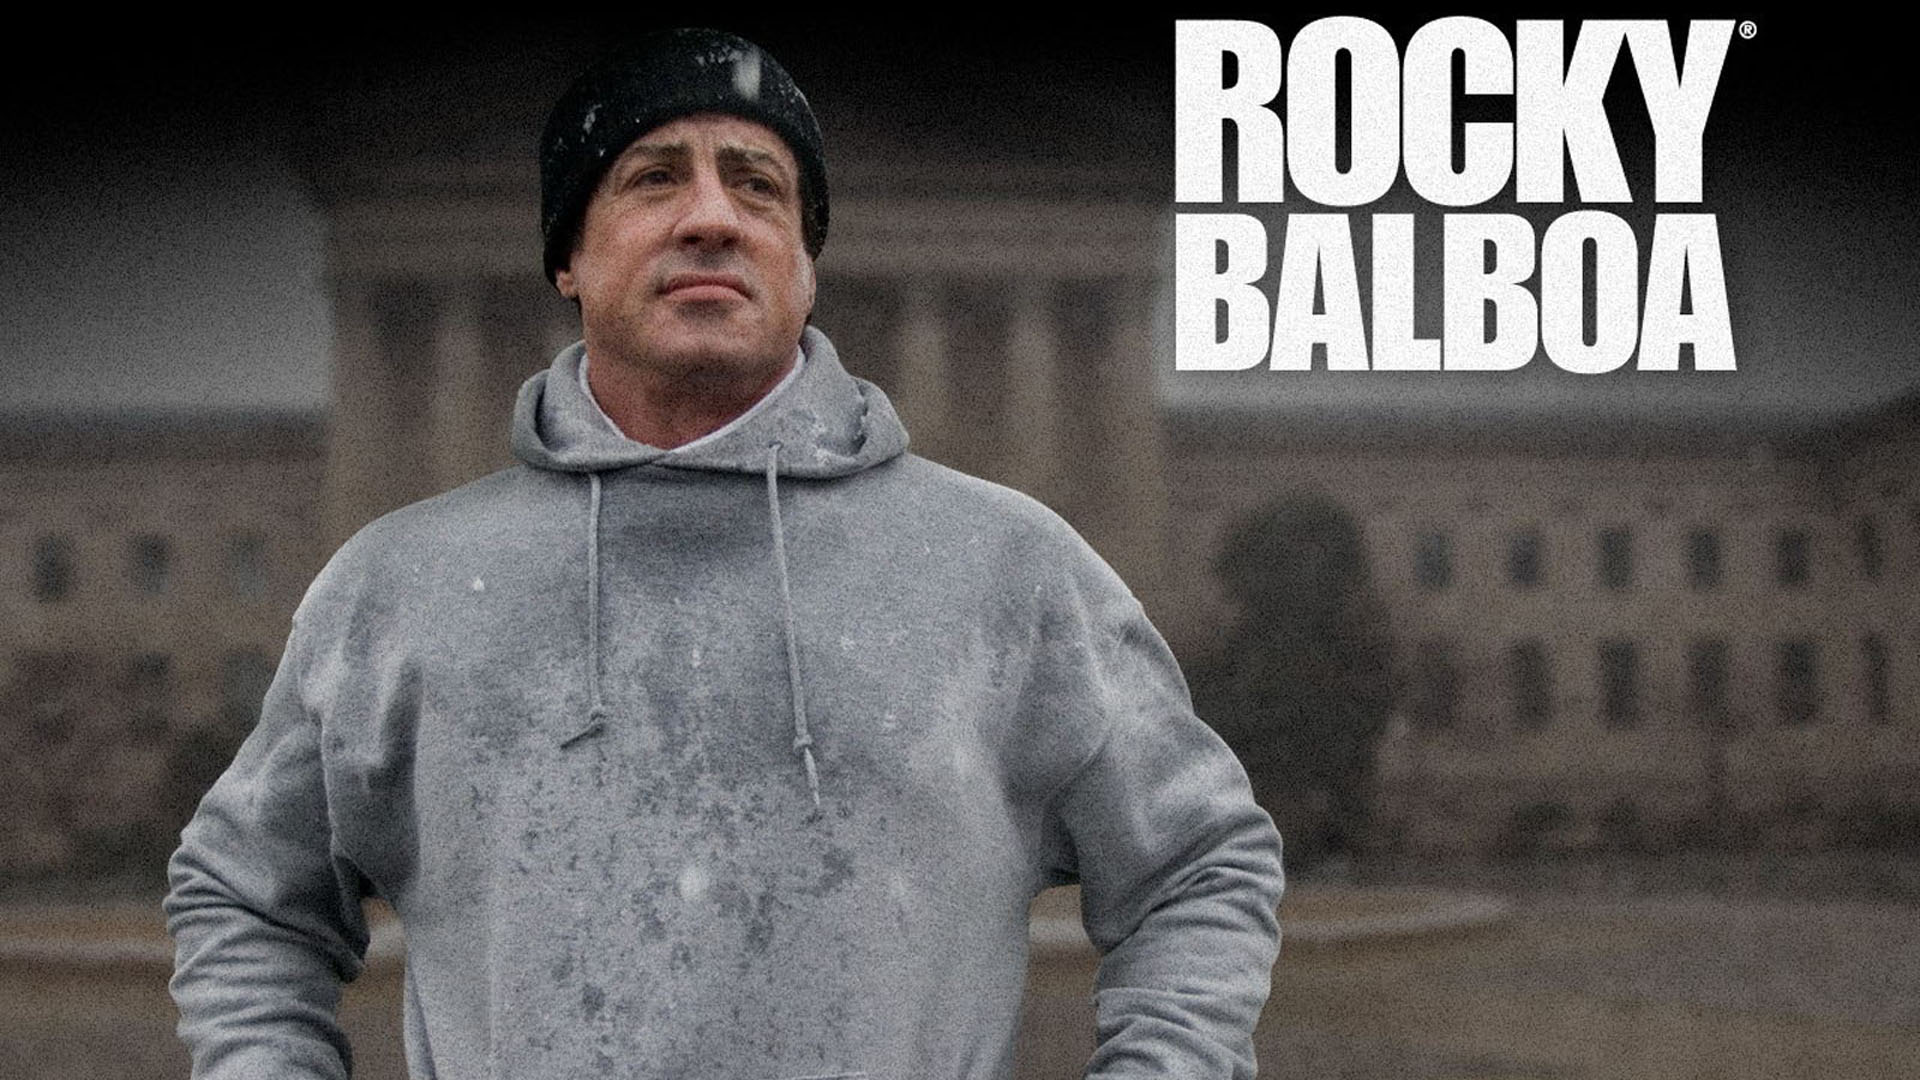 Rocky Balboa Wallpaper 1920x1080 Wallpapers 1920x1080 1920x1080